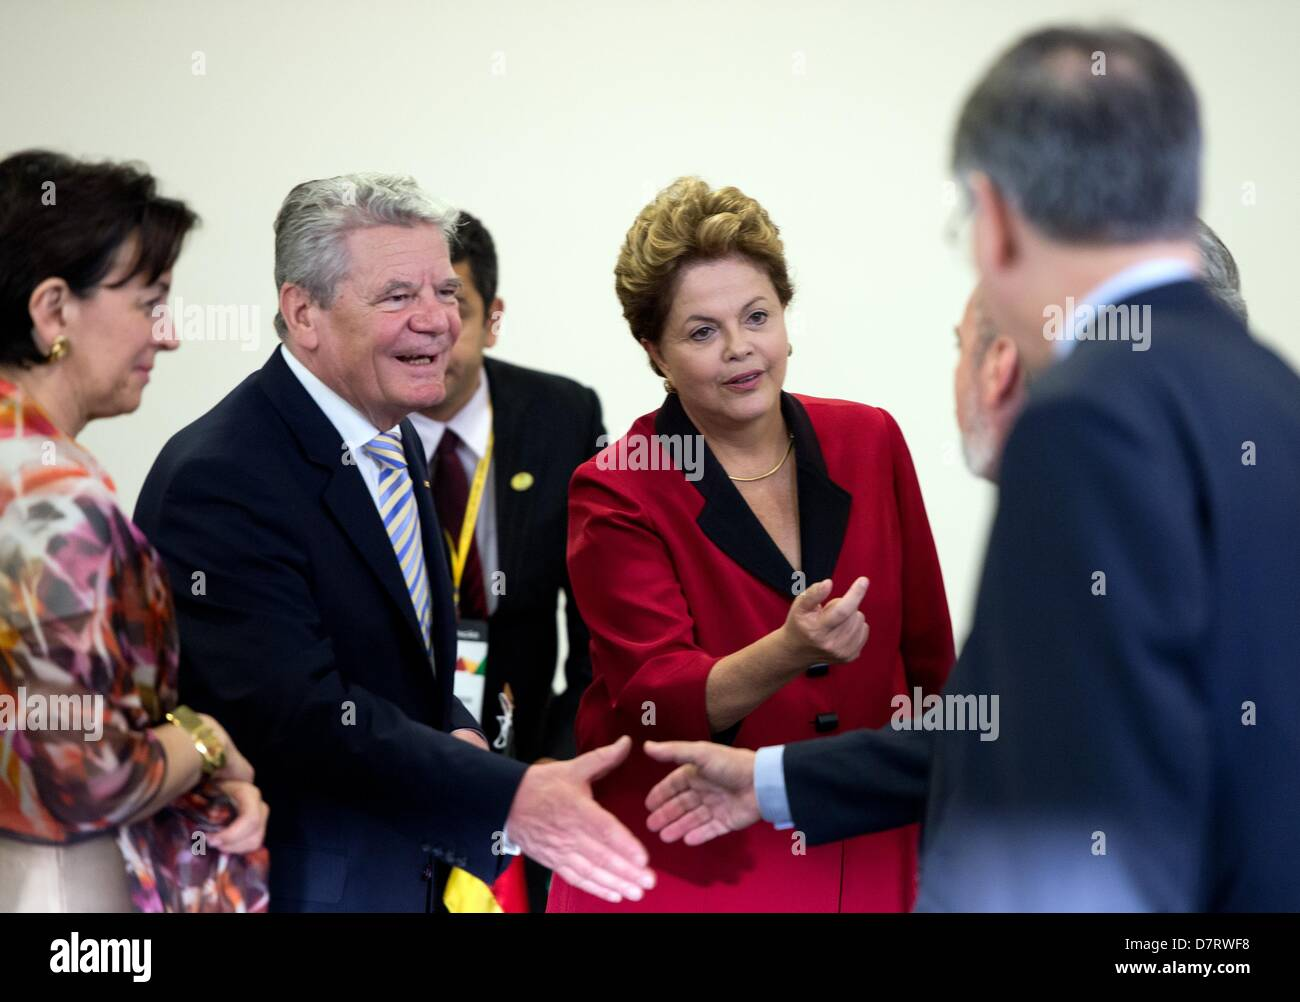 German president joachim gauck and brazilian president dilma vana german president joachim gauck and brazilian president dilma vana rousseff c greet the ministers and members of their delegations before the start of a m4hsunfo